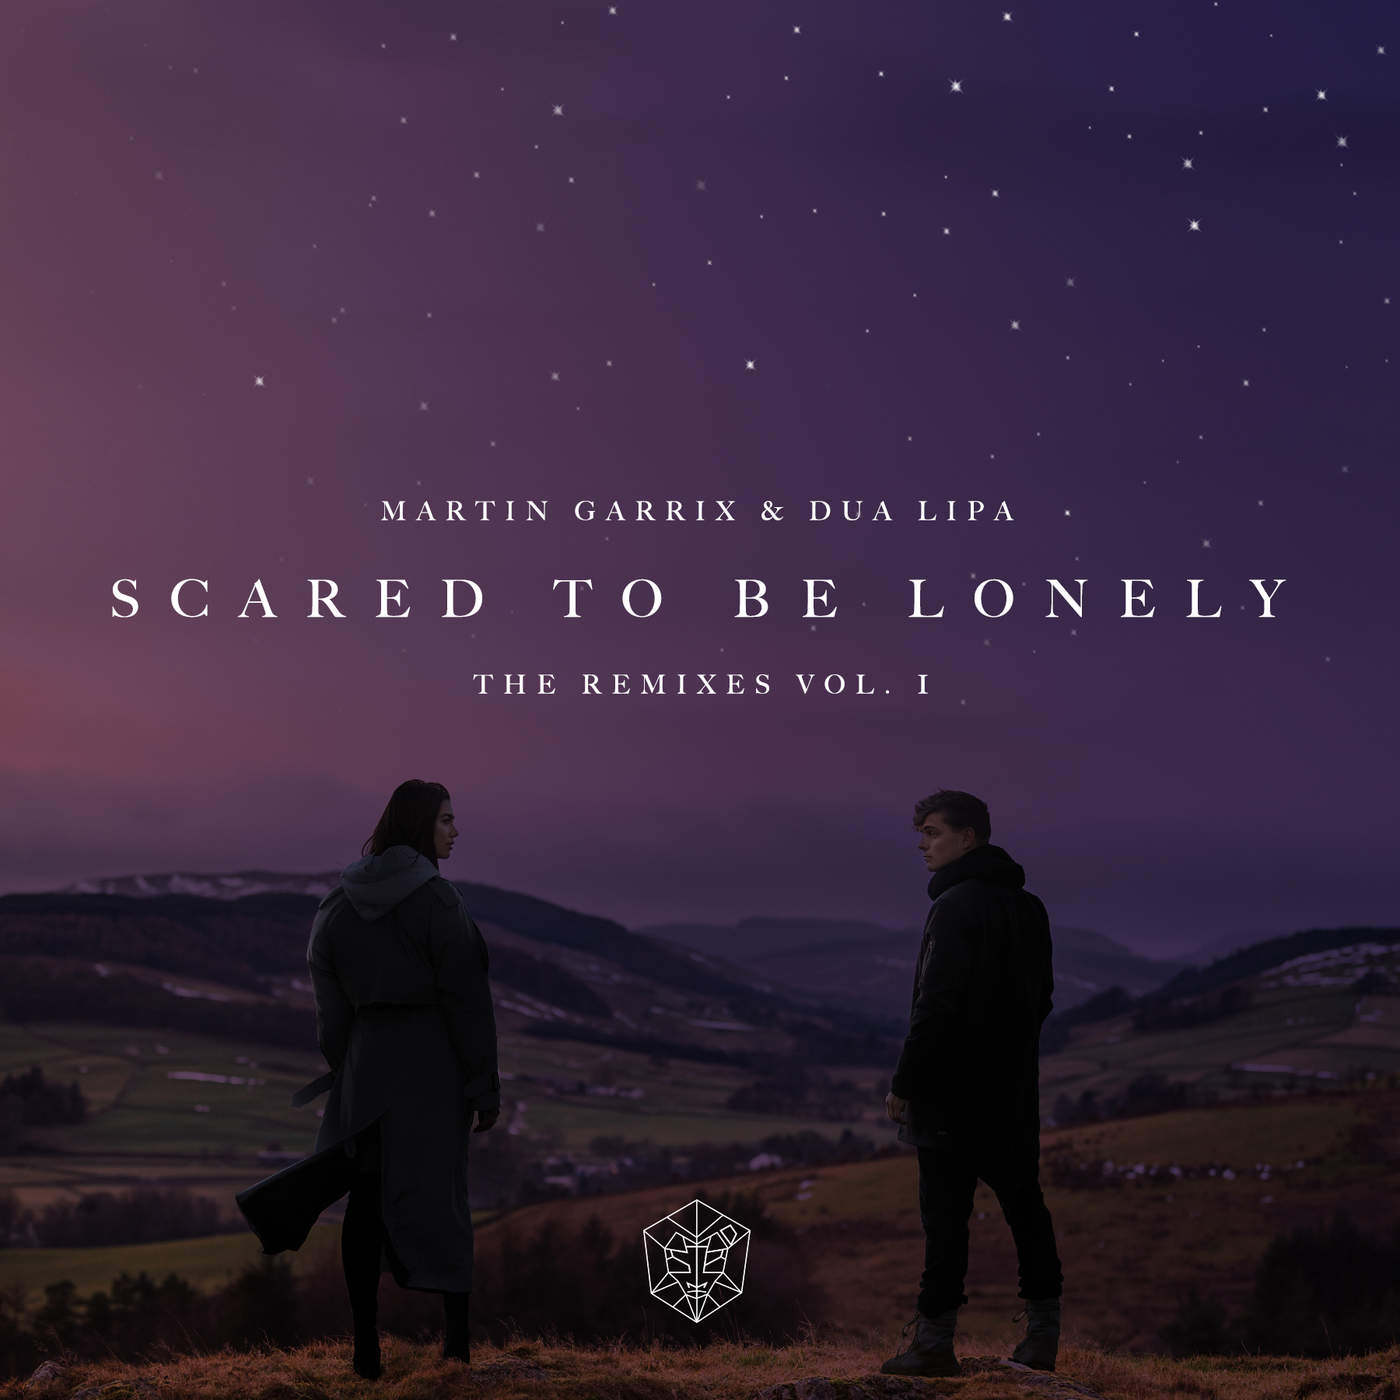 Martin Garrix & Dua Lipa - Scared to Be Lonely (Remixes, Vol. 1) - EP Cover